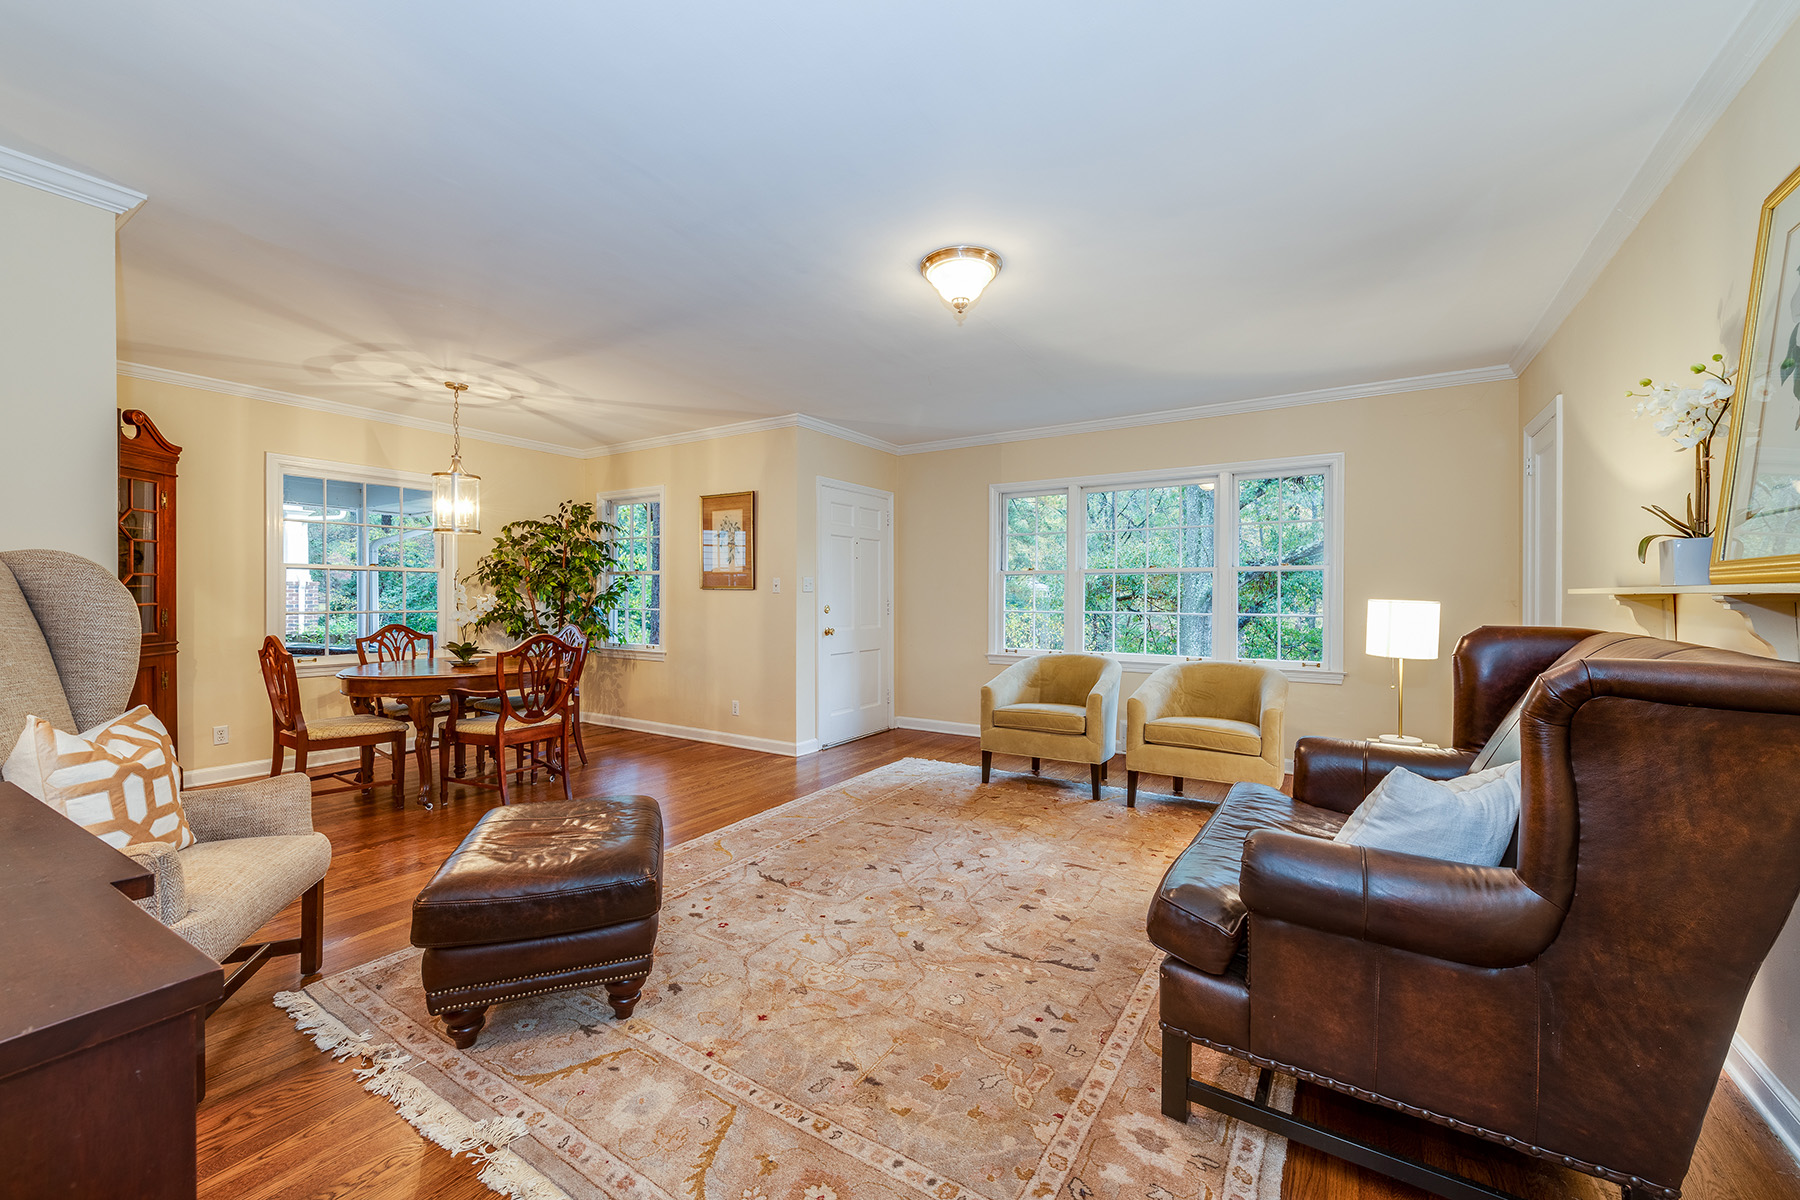 Single Family Home for Sale at Bright One-Level Ranch is Private Oasis in City of Decatur 513 Westchester Drive Decatur, Georgia 30030 United States